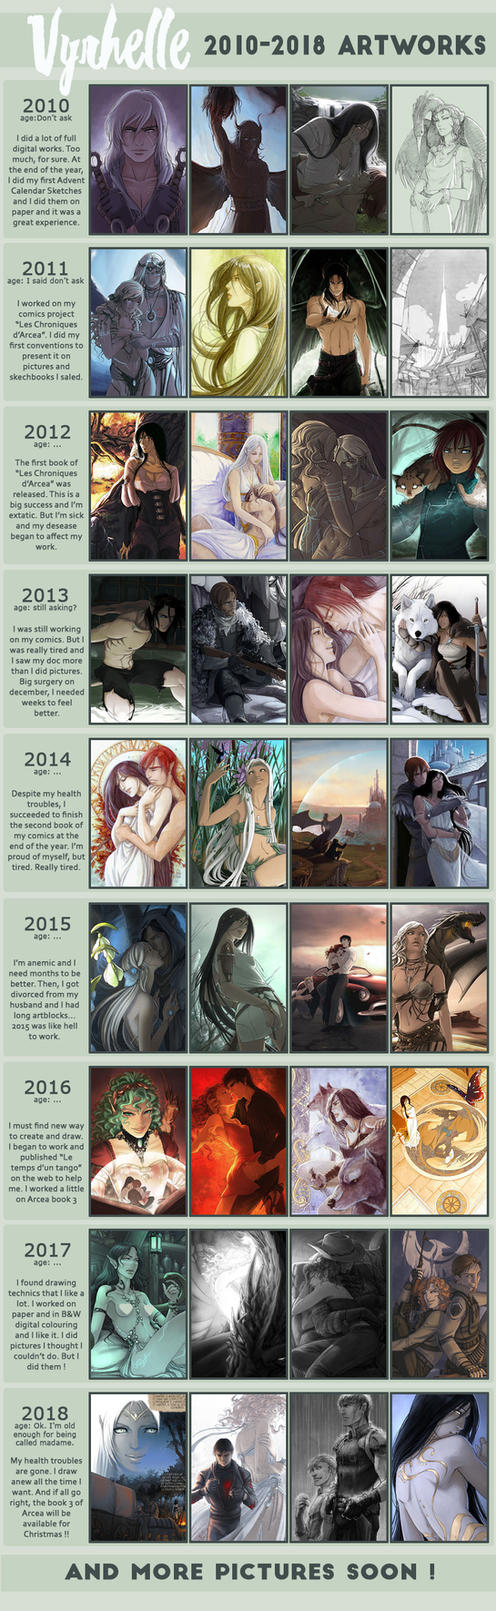 Improvement meme 2010 - 2018 by Vyrhelle-VyrL